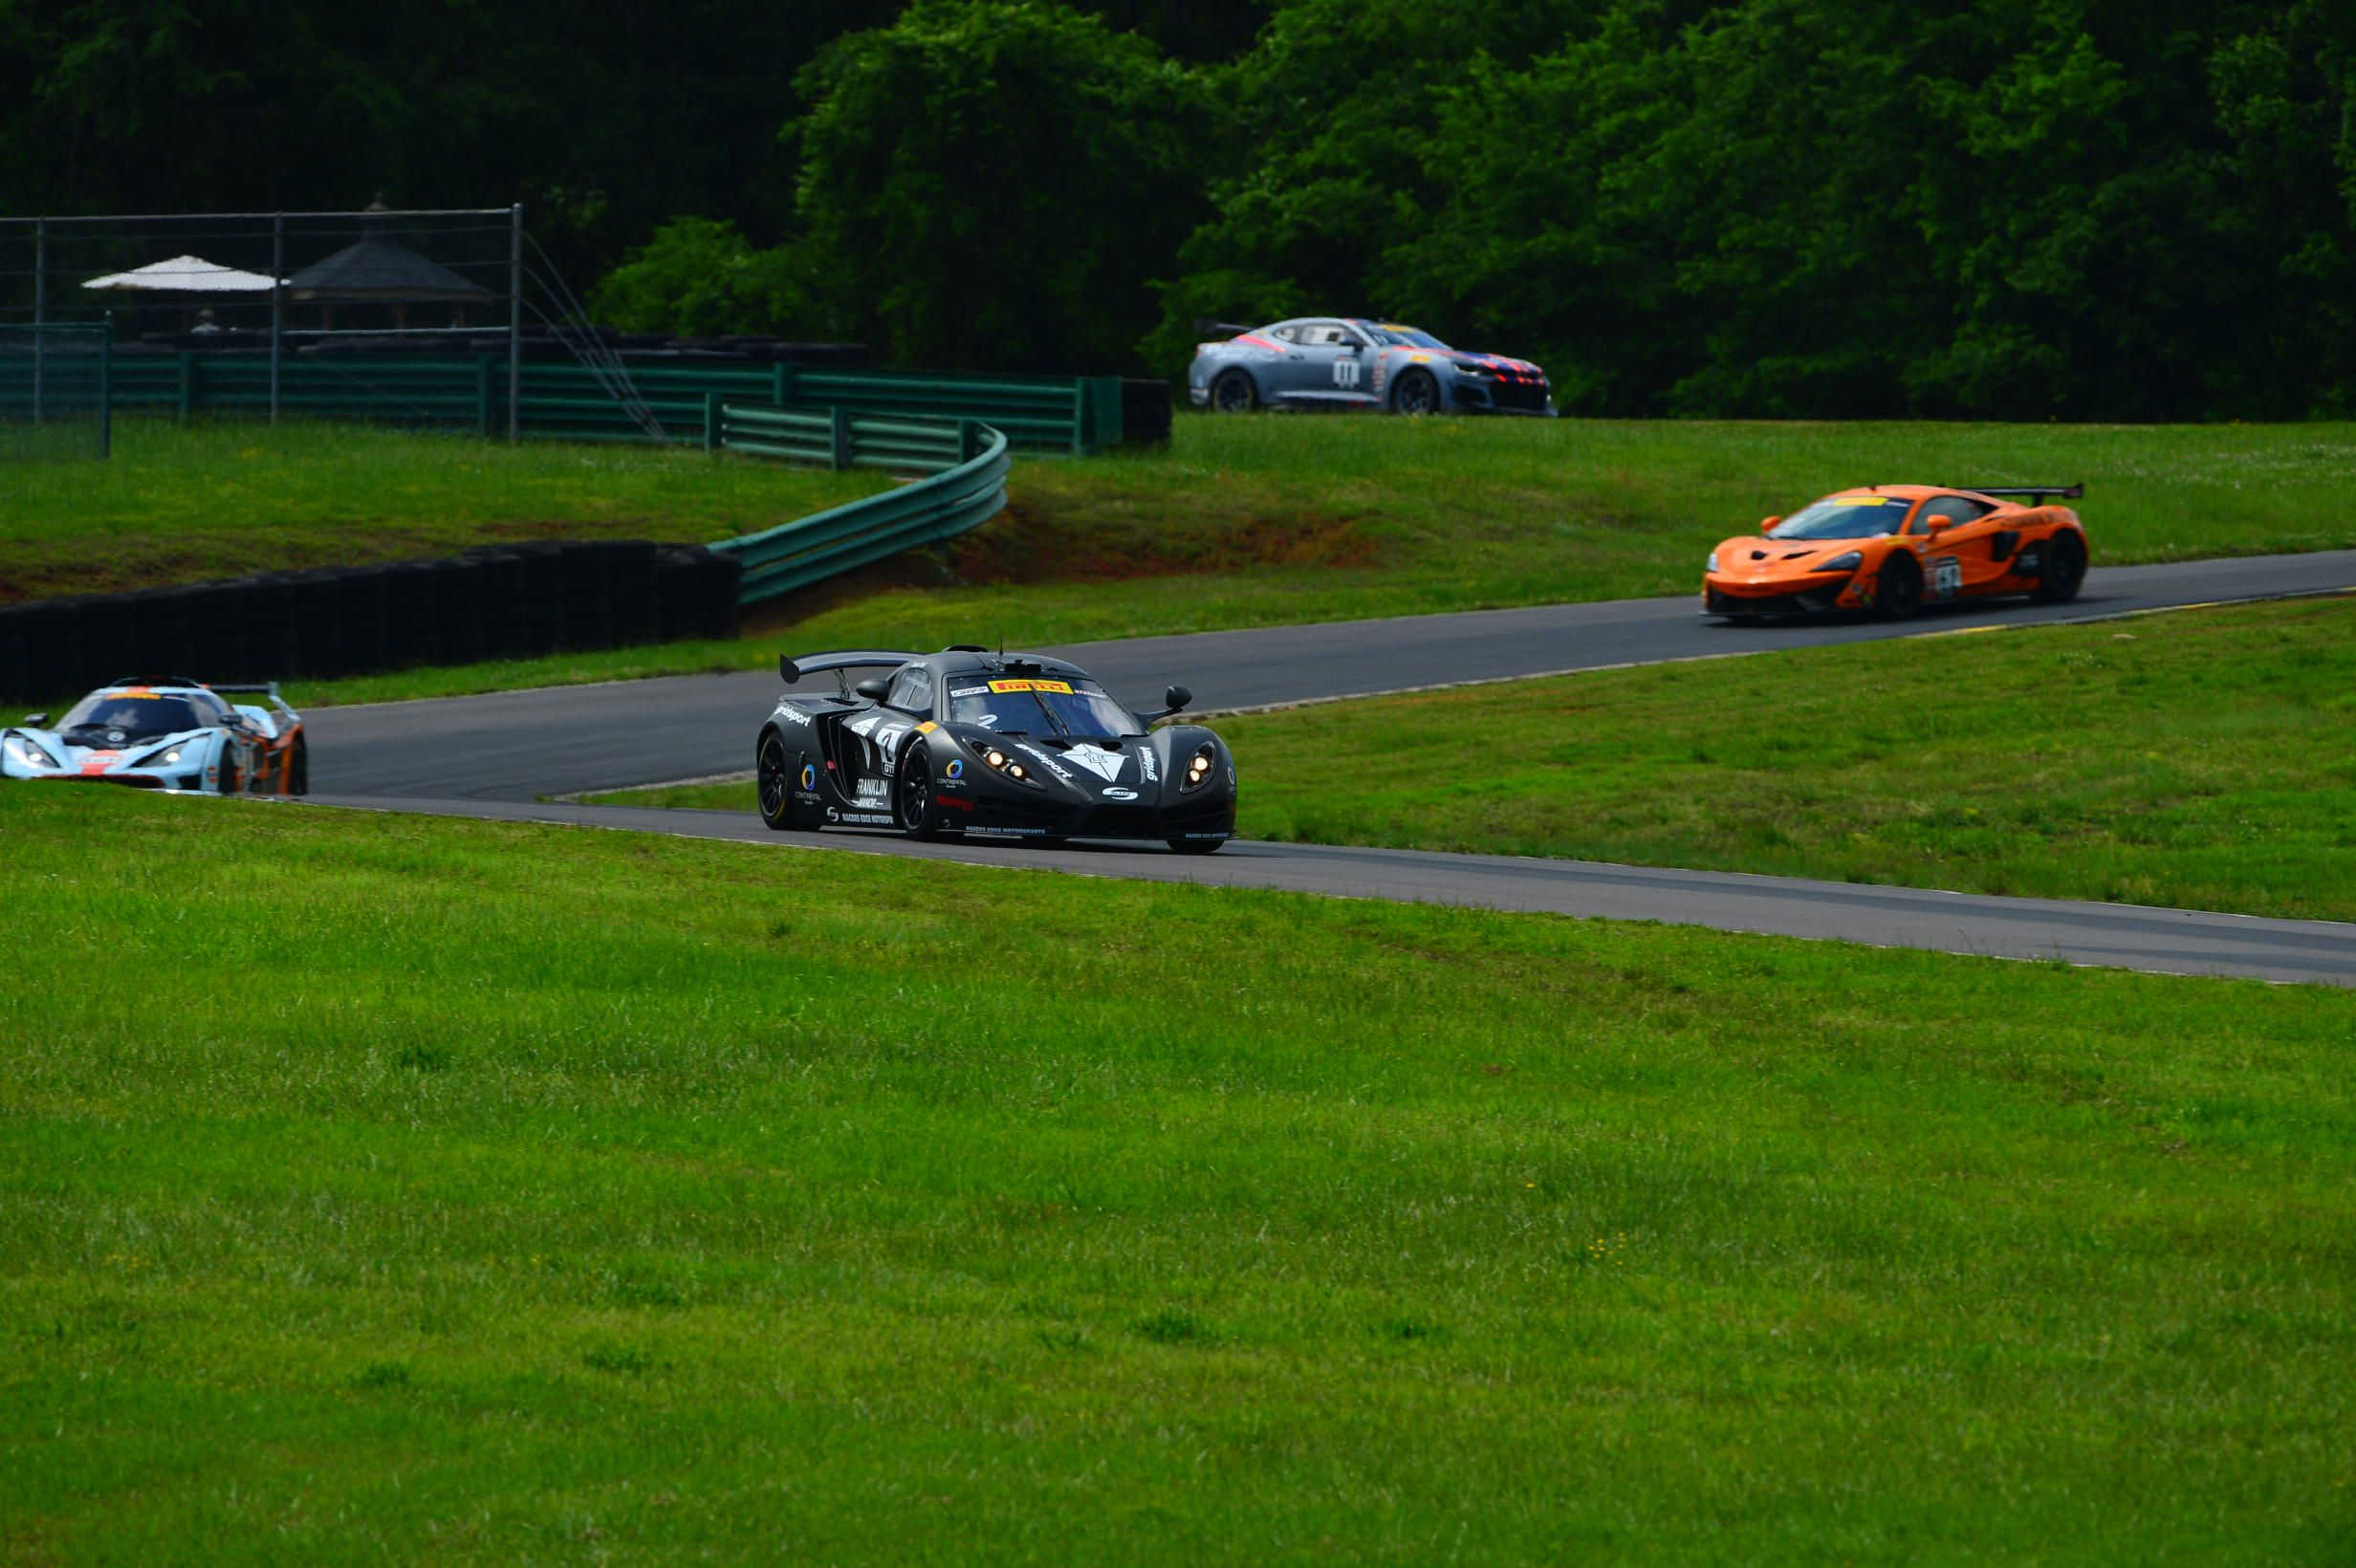 Some Great Photos Of Our Sin Race Cars In Action This Past